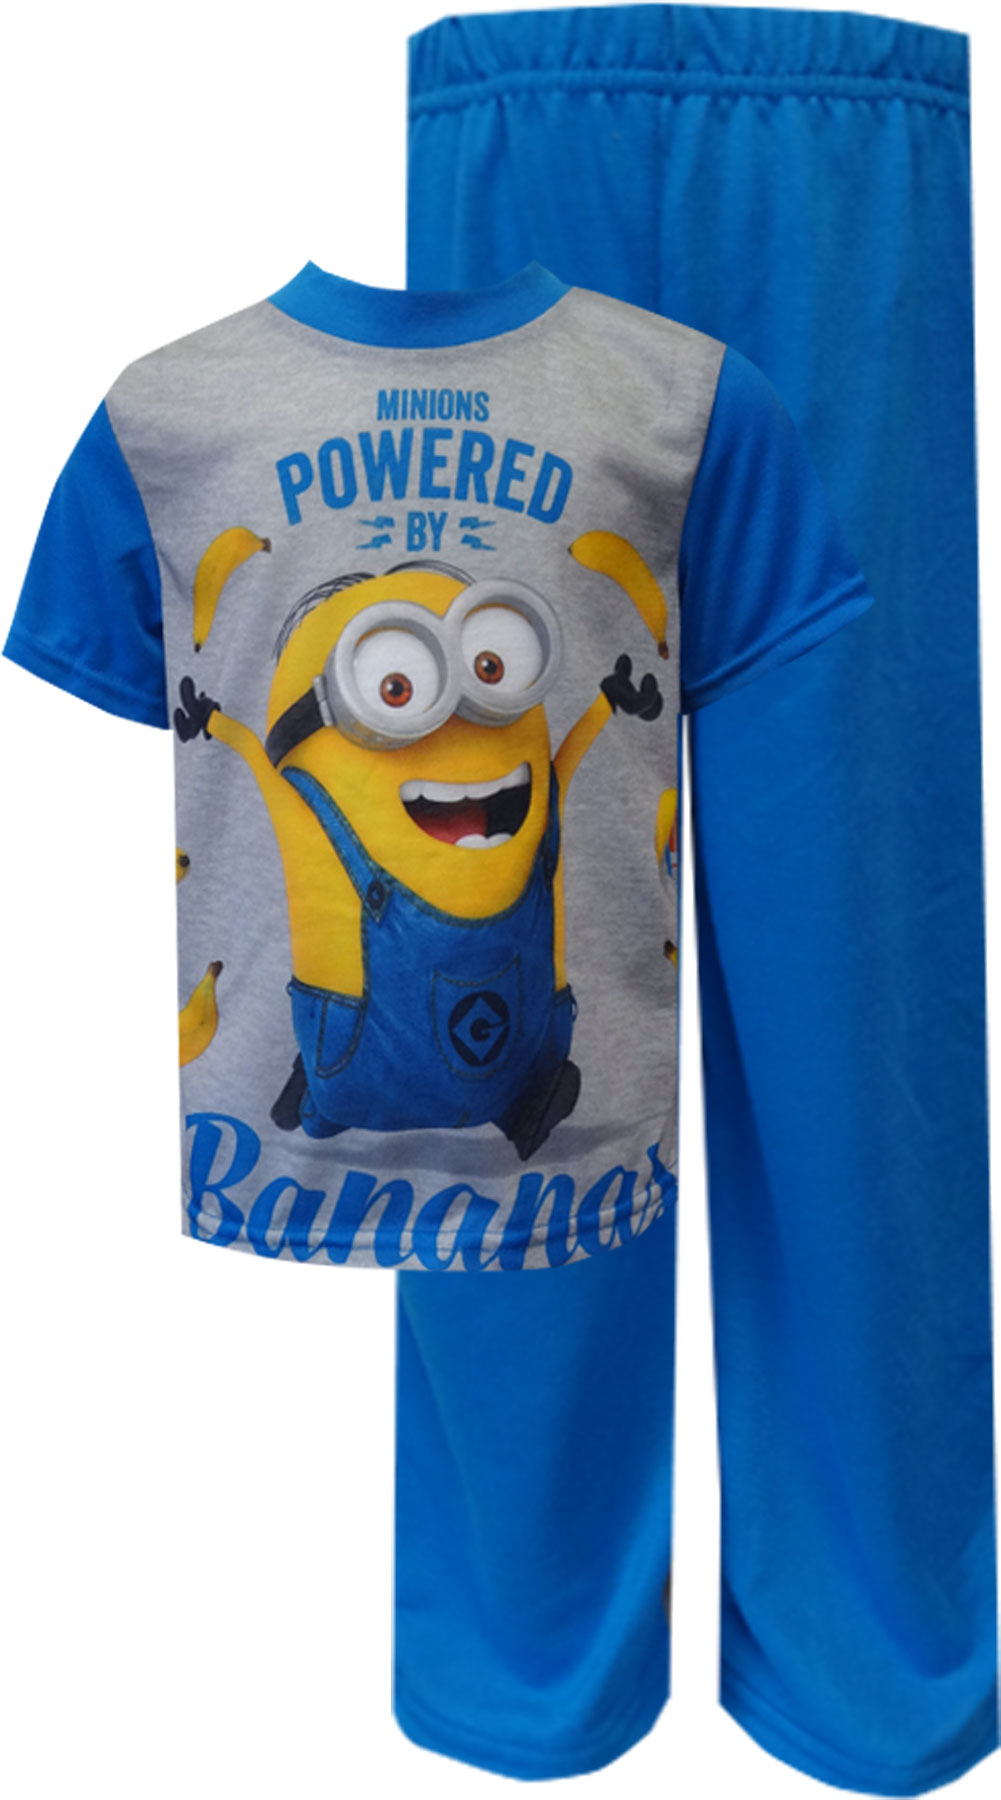 Image of Despicable Me 2 Minions Powered By Bananas Pajamas for boys